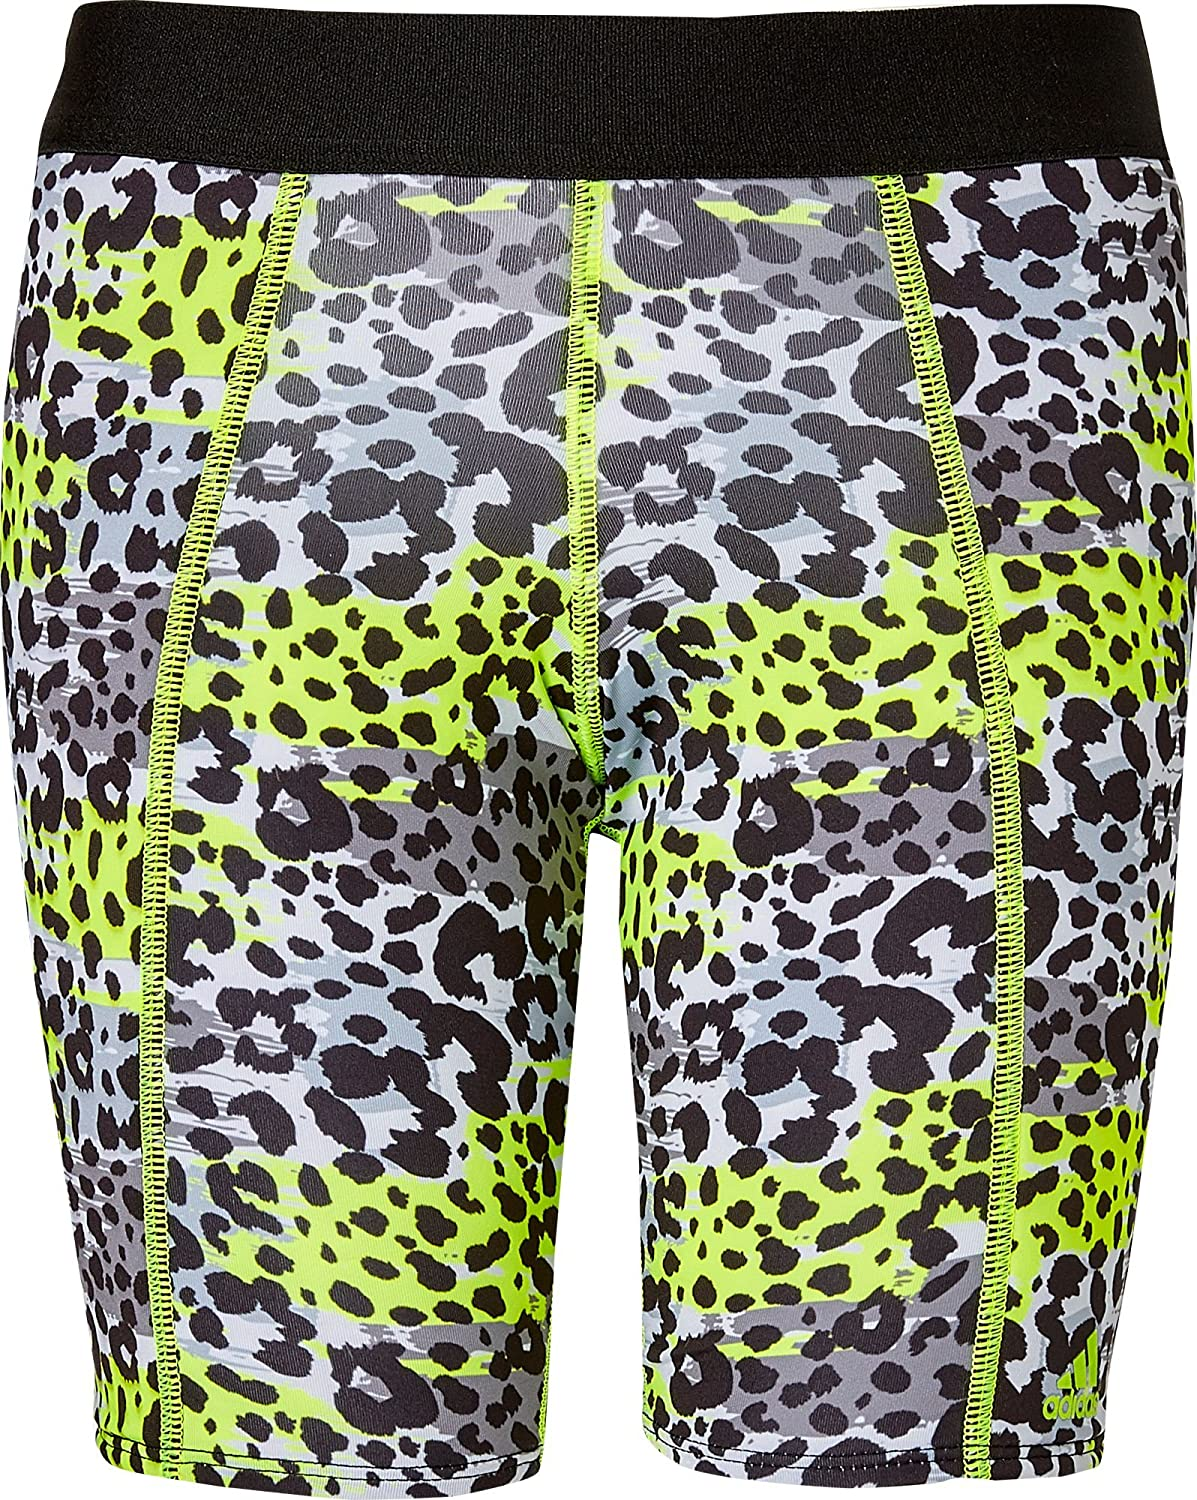 Adidas Girls ' Destiny Printed Sliding Shorts B0793R8M7FNeon Yellow Animal Print Medium